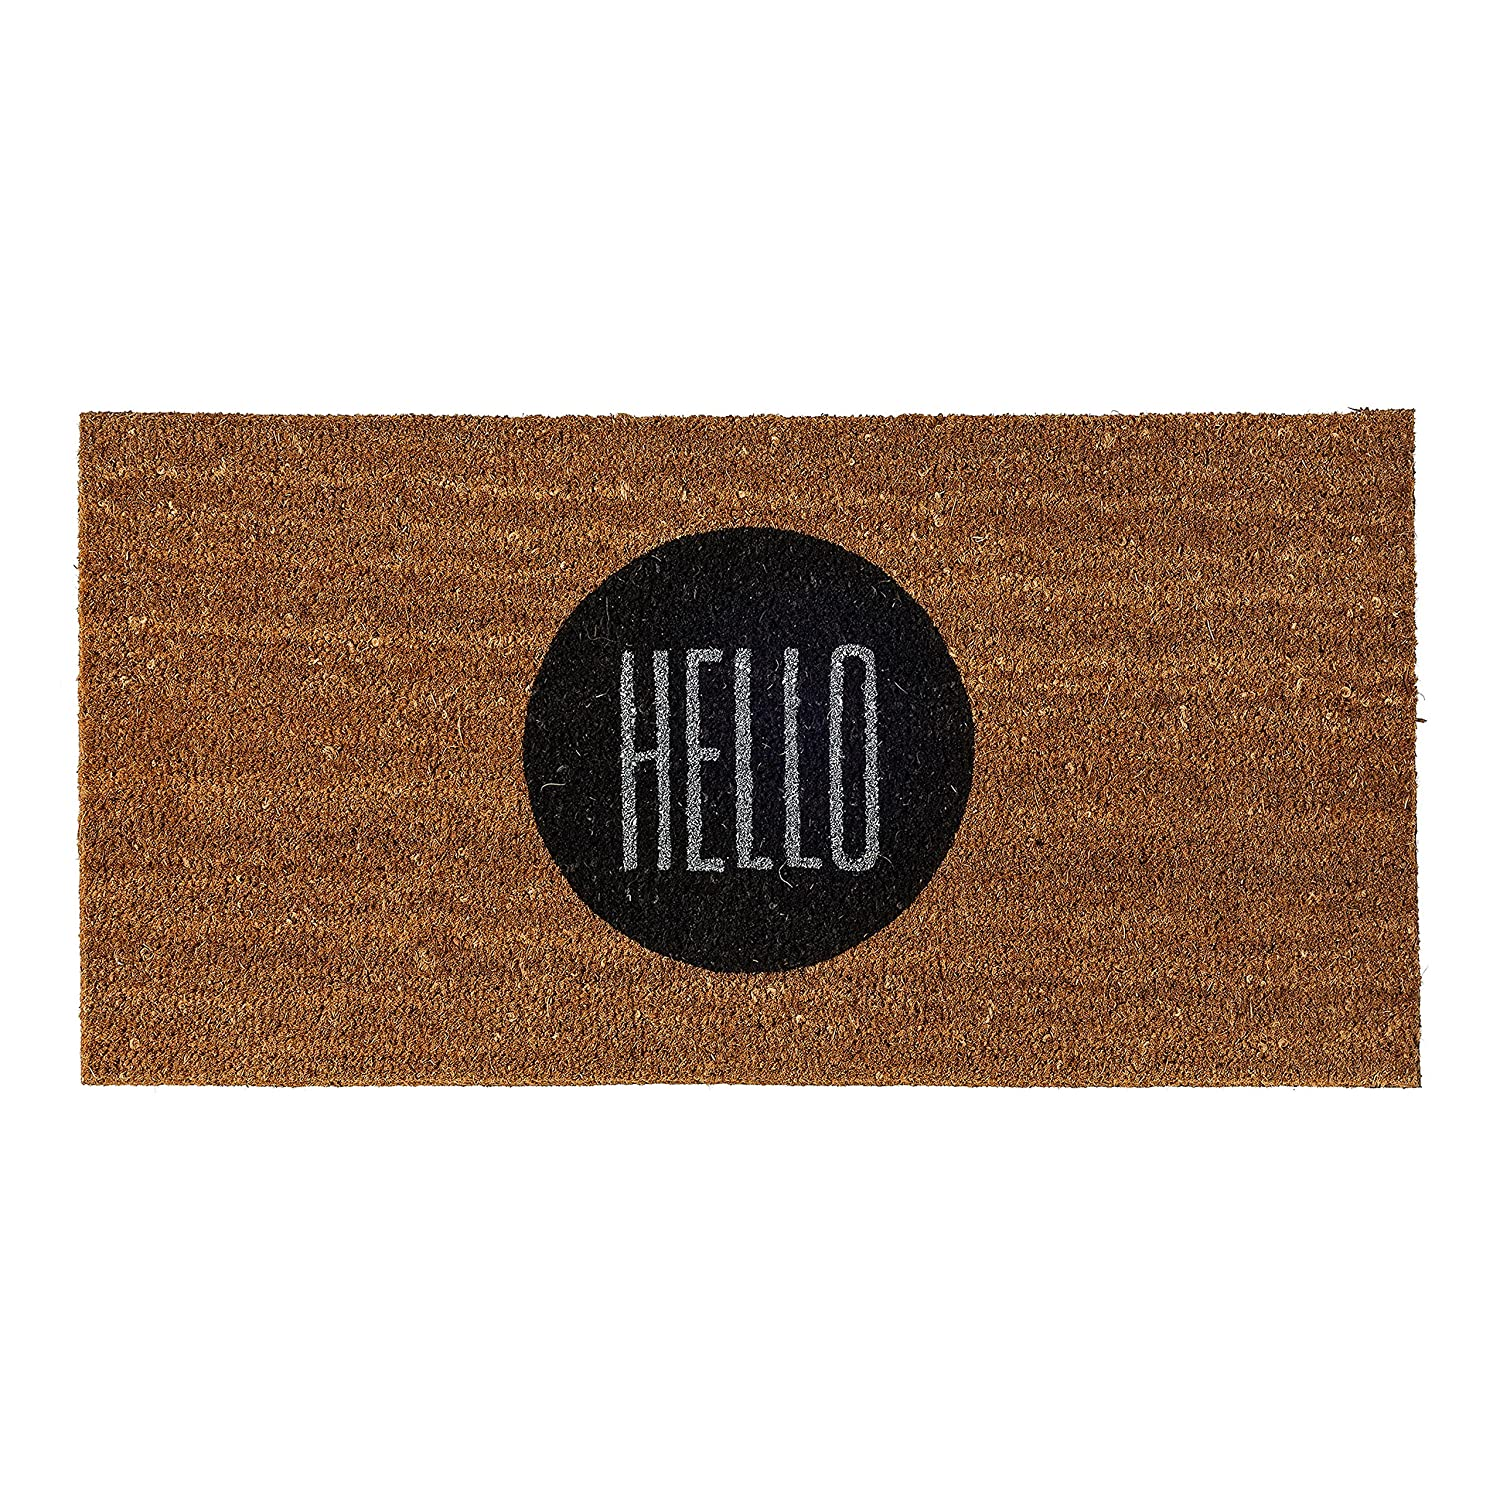 Bloomingville 31-1/2L x 15-3/4W Coir Doormat with Hello A76200004